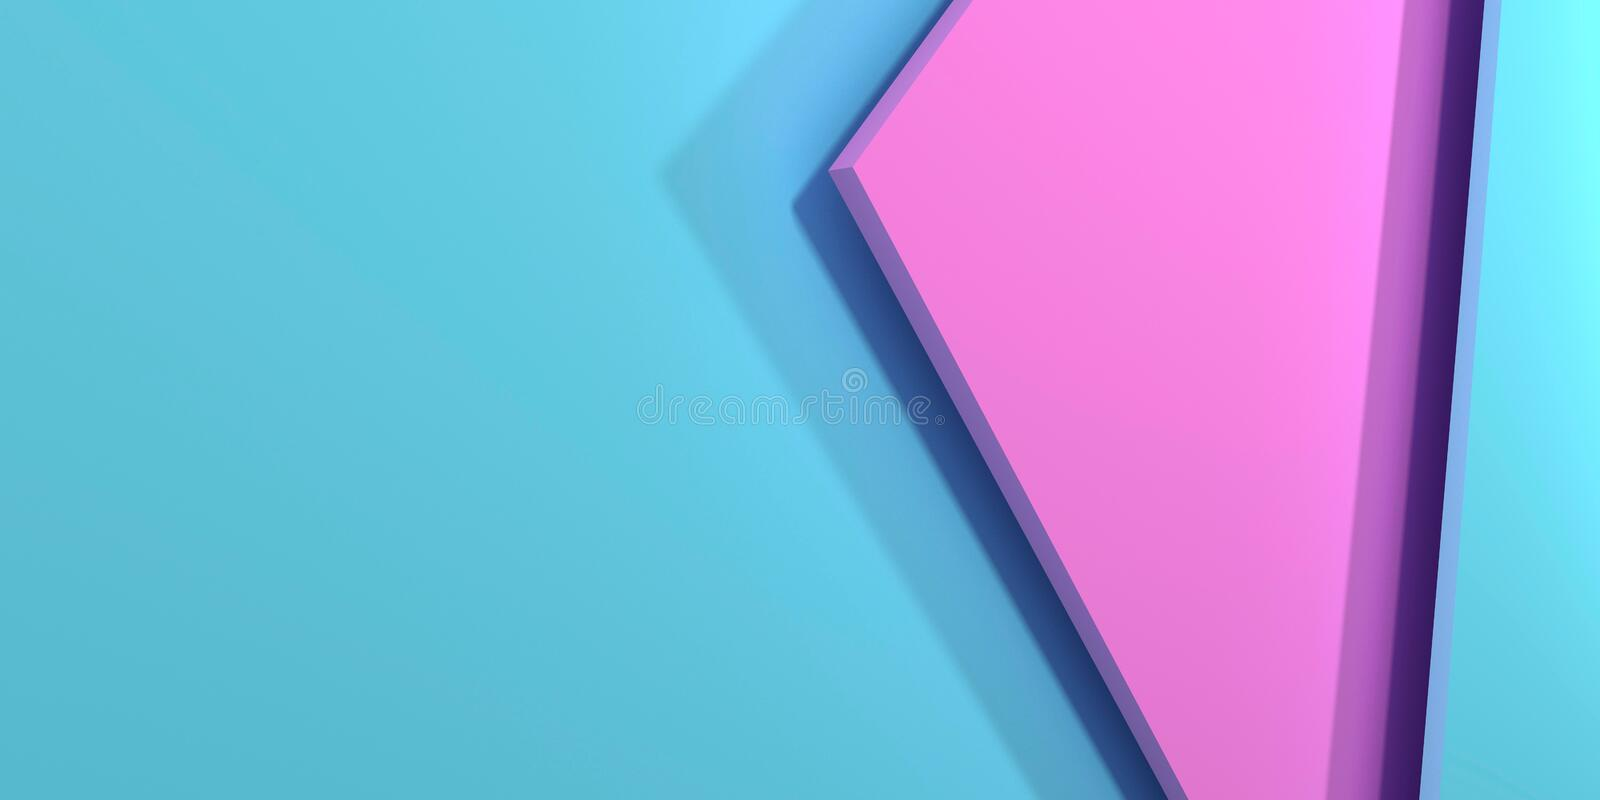 Pink and blue pastel background. royalty free illustration